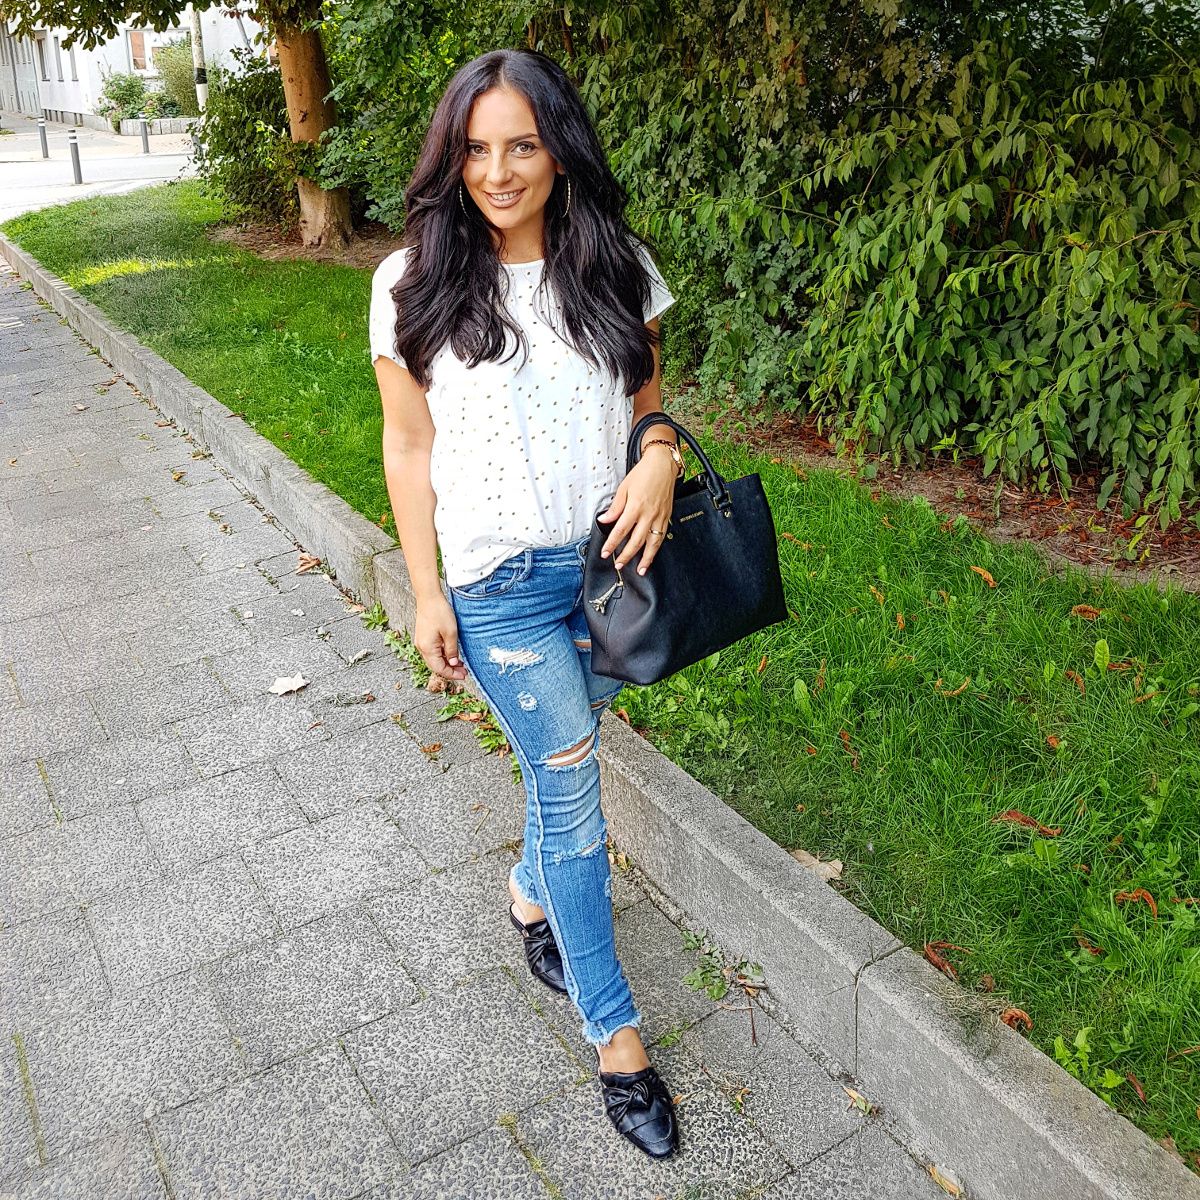 casual-jeans-zerrrissene-jeans-ripped-schleifen-schuhe-lange-haare-fashion-blog-outfit-streetstyle.